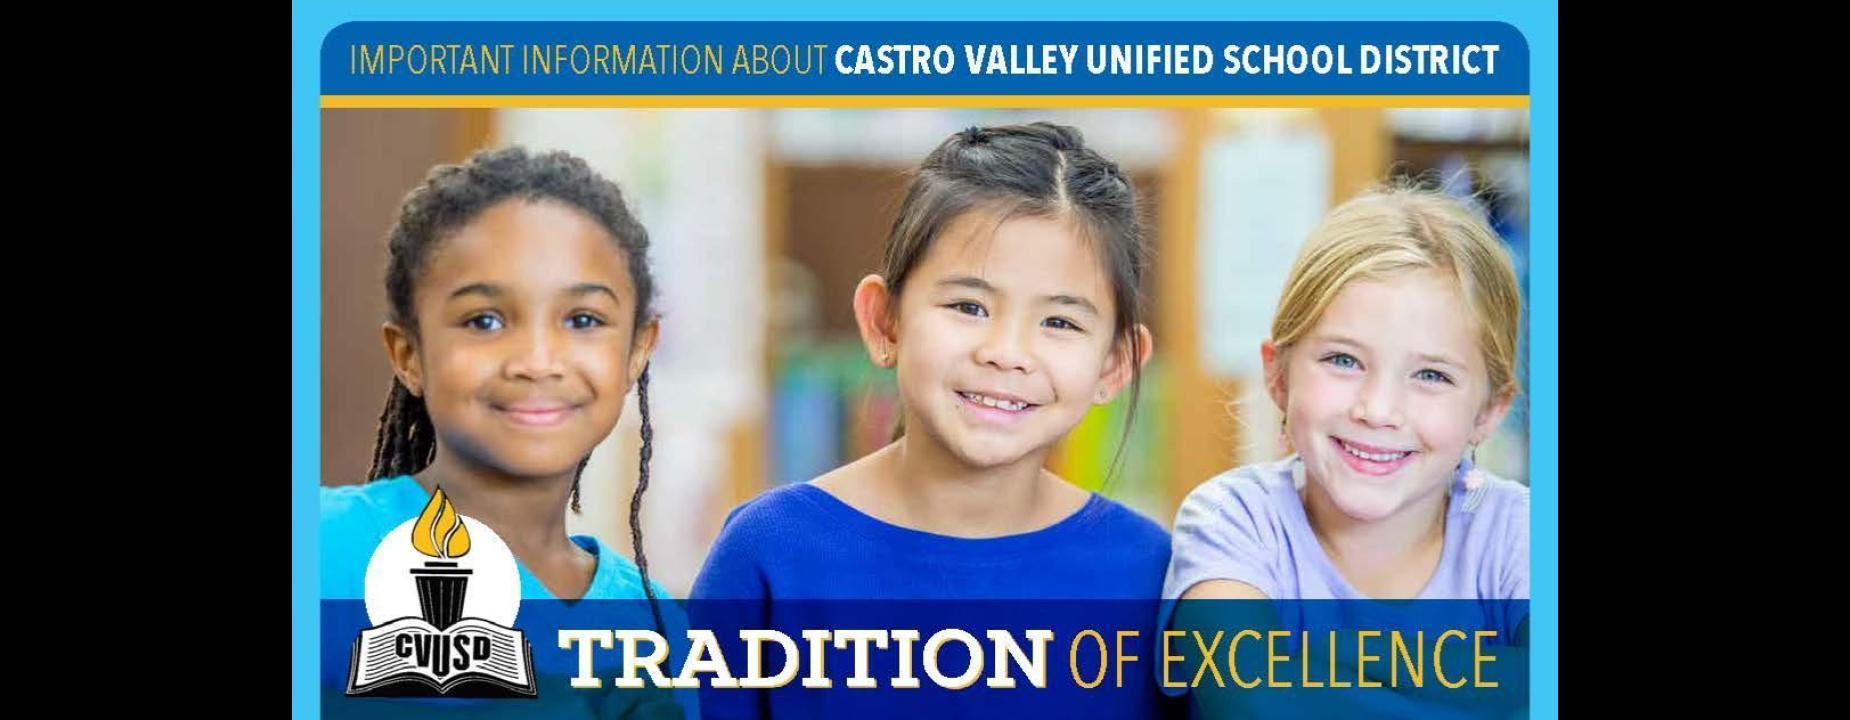 Castro Valley Unified School District